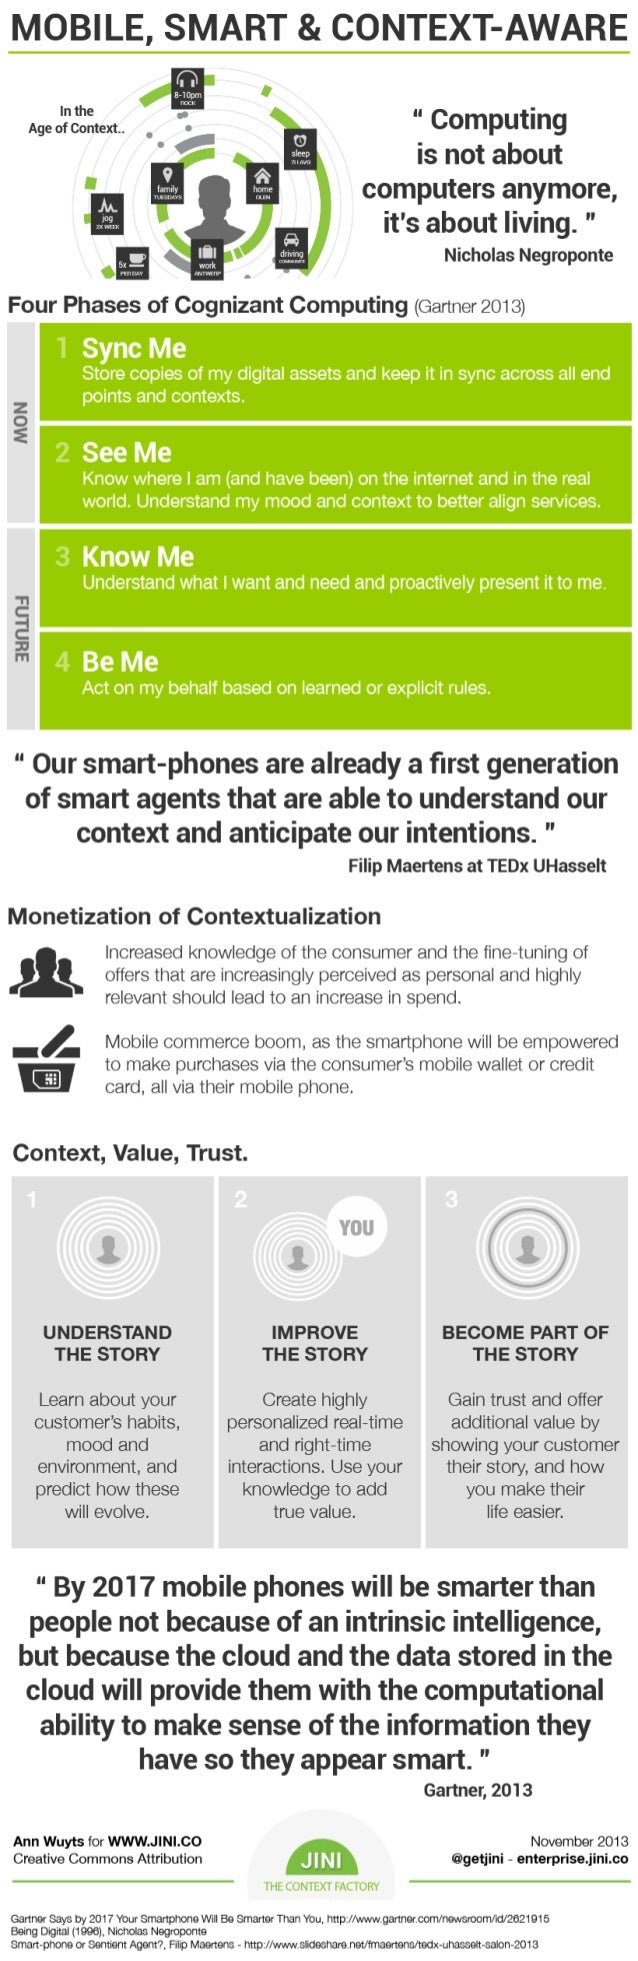 Mobile, Smart & Context-Aware (infographic)